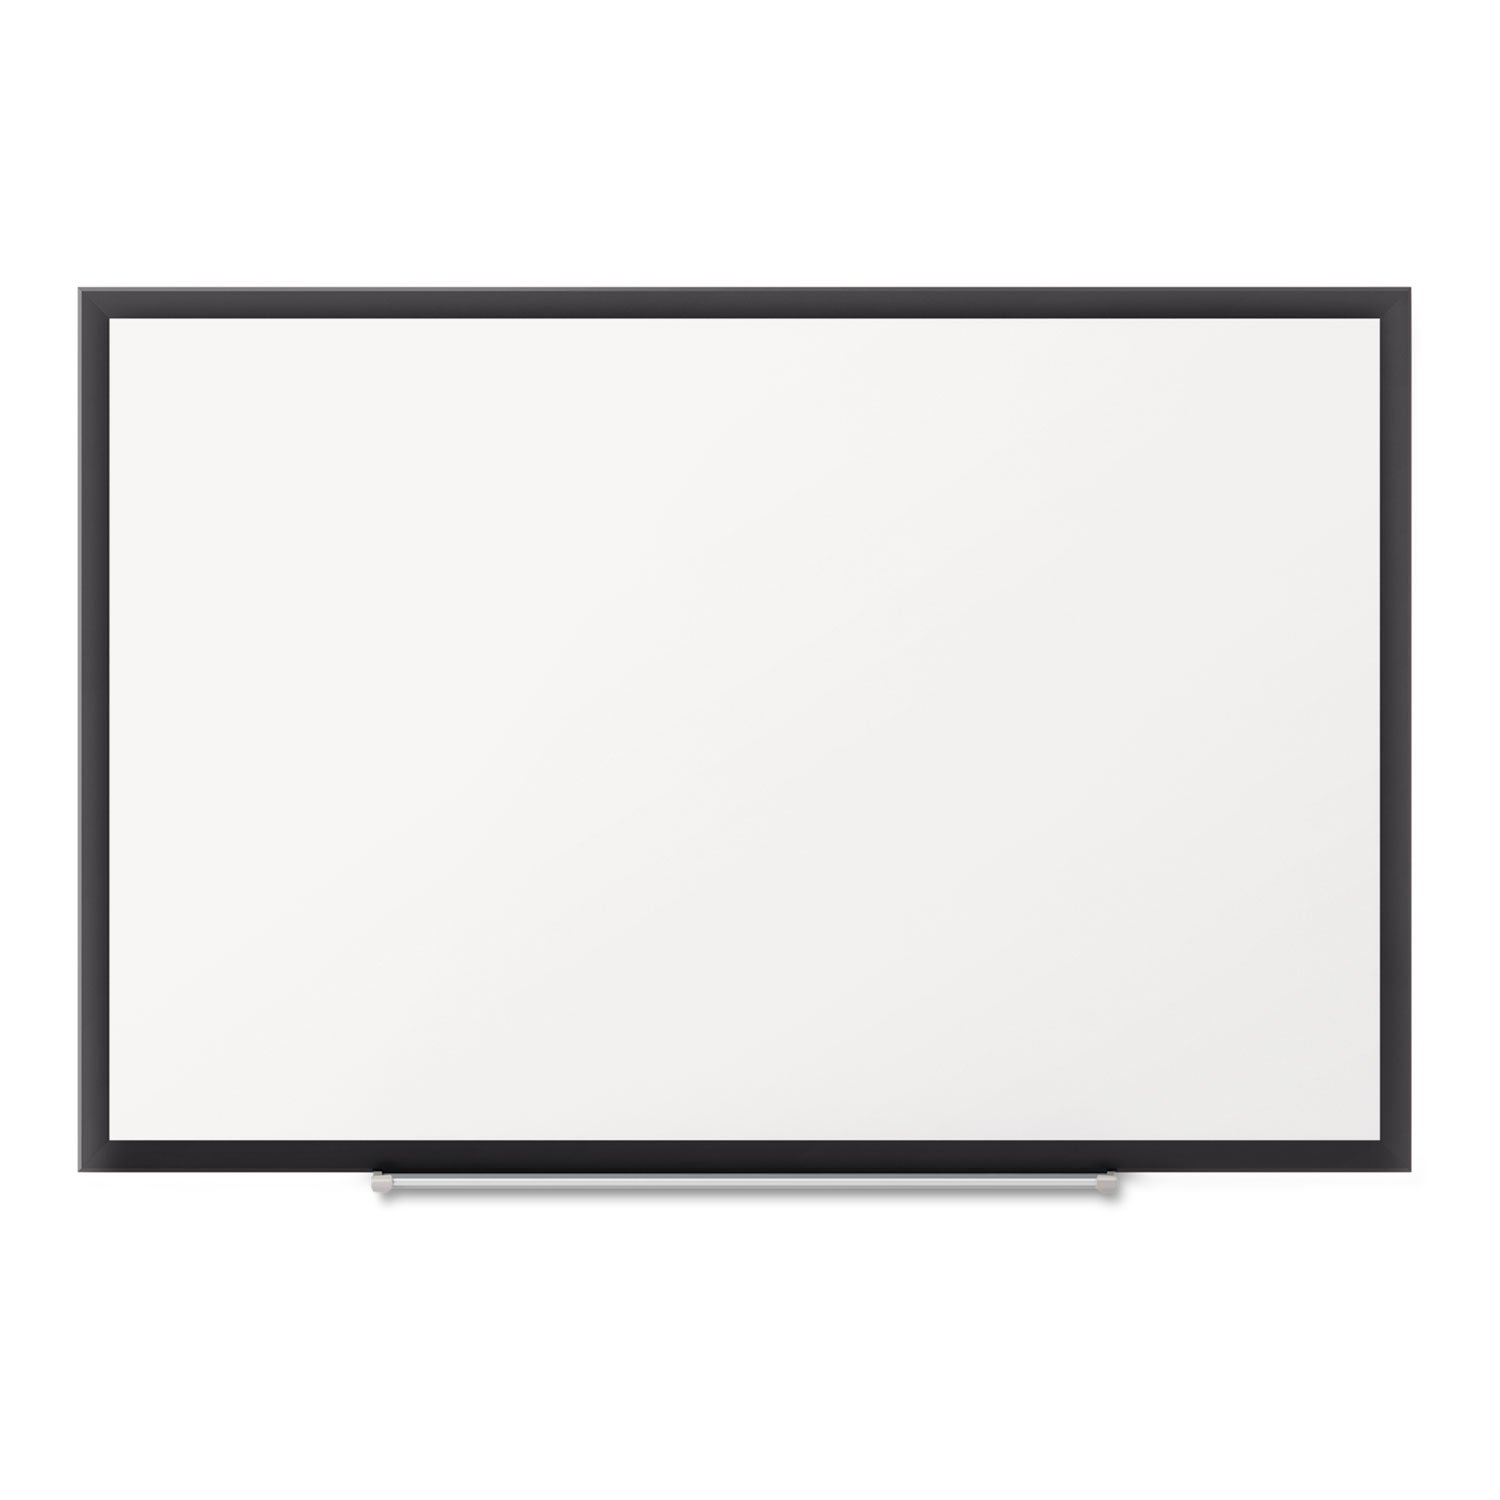 Classic Magnetic Whiteboard, 36 X 24, Black Aluminum Frame By: Quartet